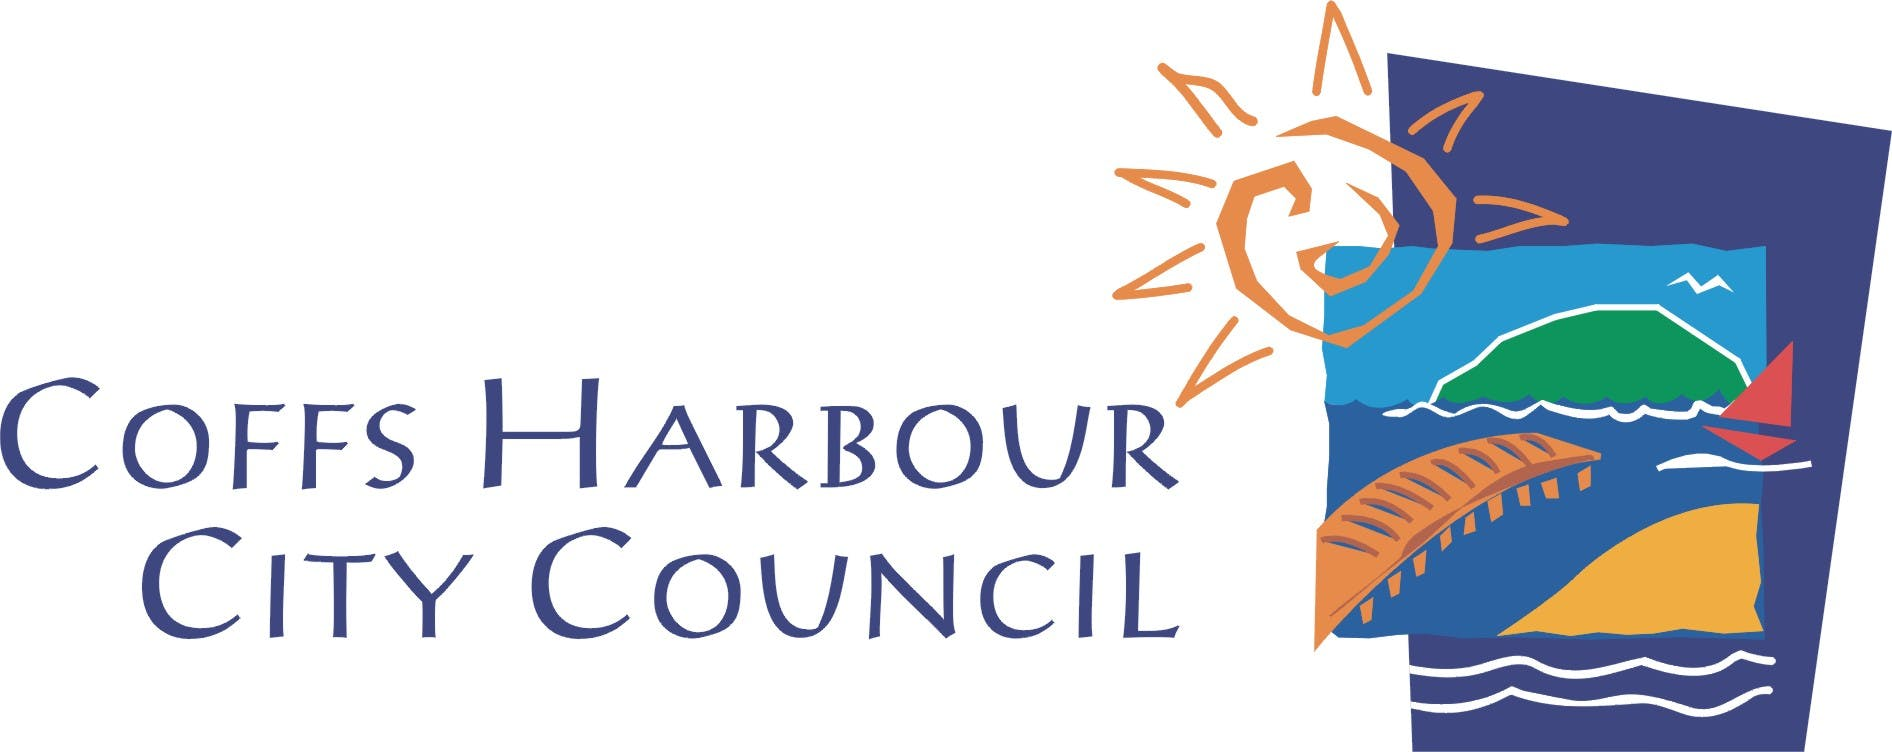 Have Your Say Coffs Harbour